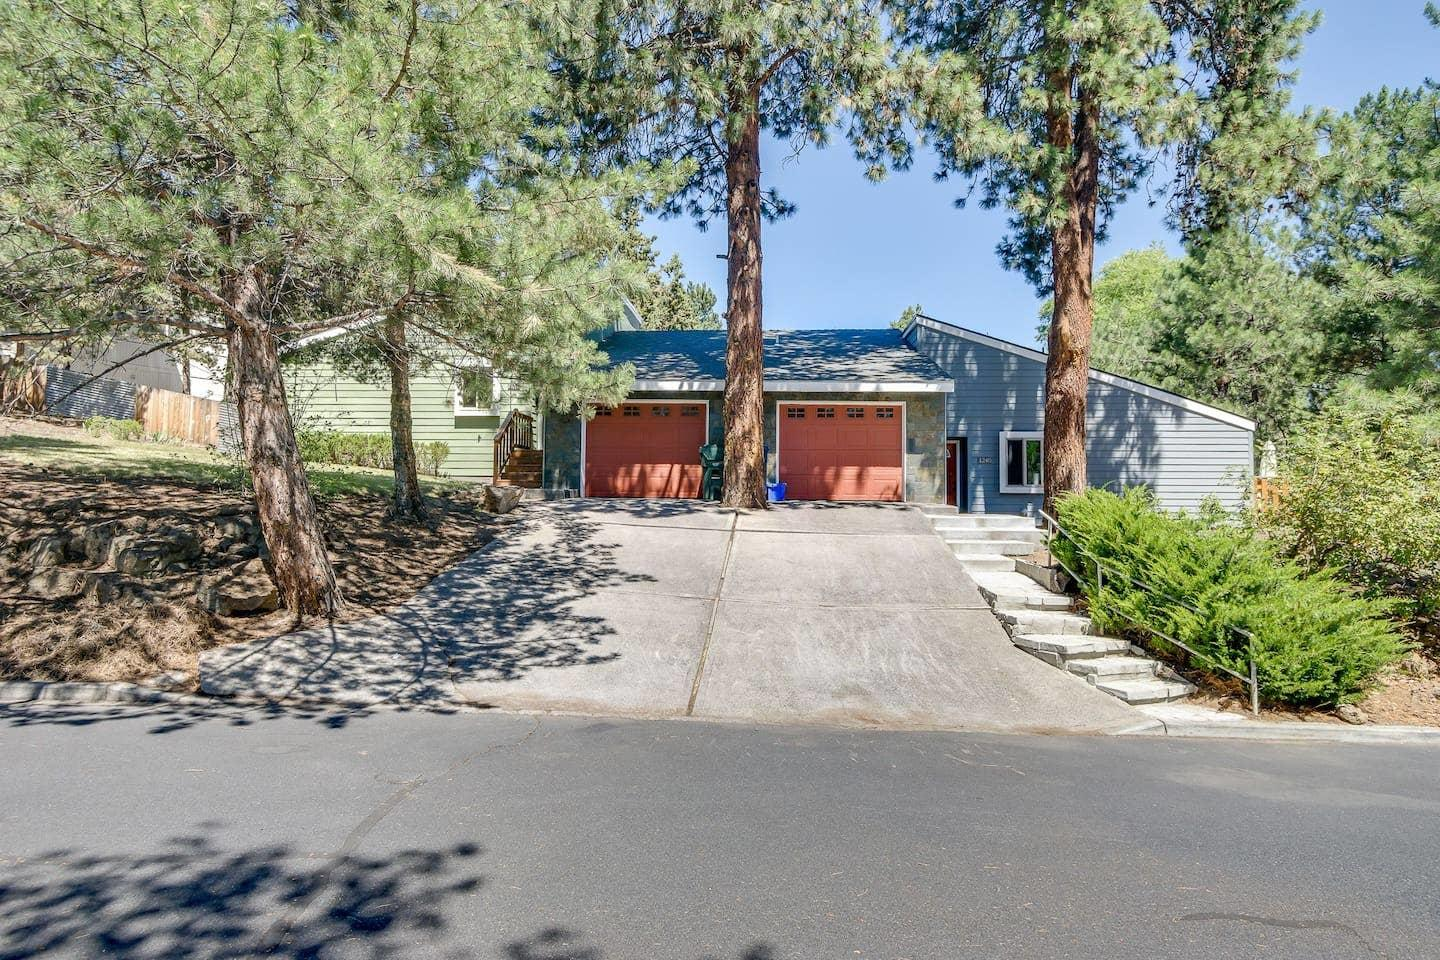 Two very successful Short Term Rentals on one lot! Nicely landscaped Duplex with fenced back yards on a large corner lot. Great opportunity to own a high producing Short term rental in Bend. Buyer to do due diligence regarding all schools and Short Term Rental Permit.